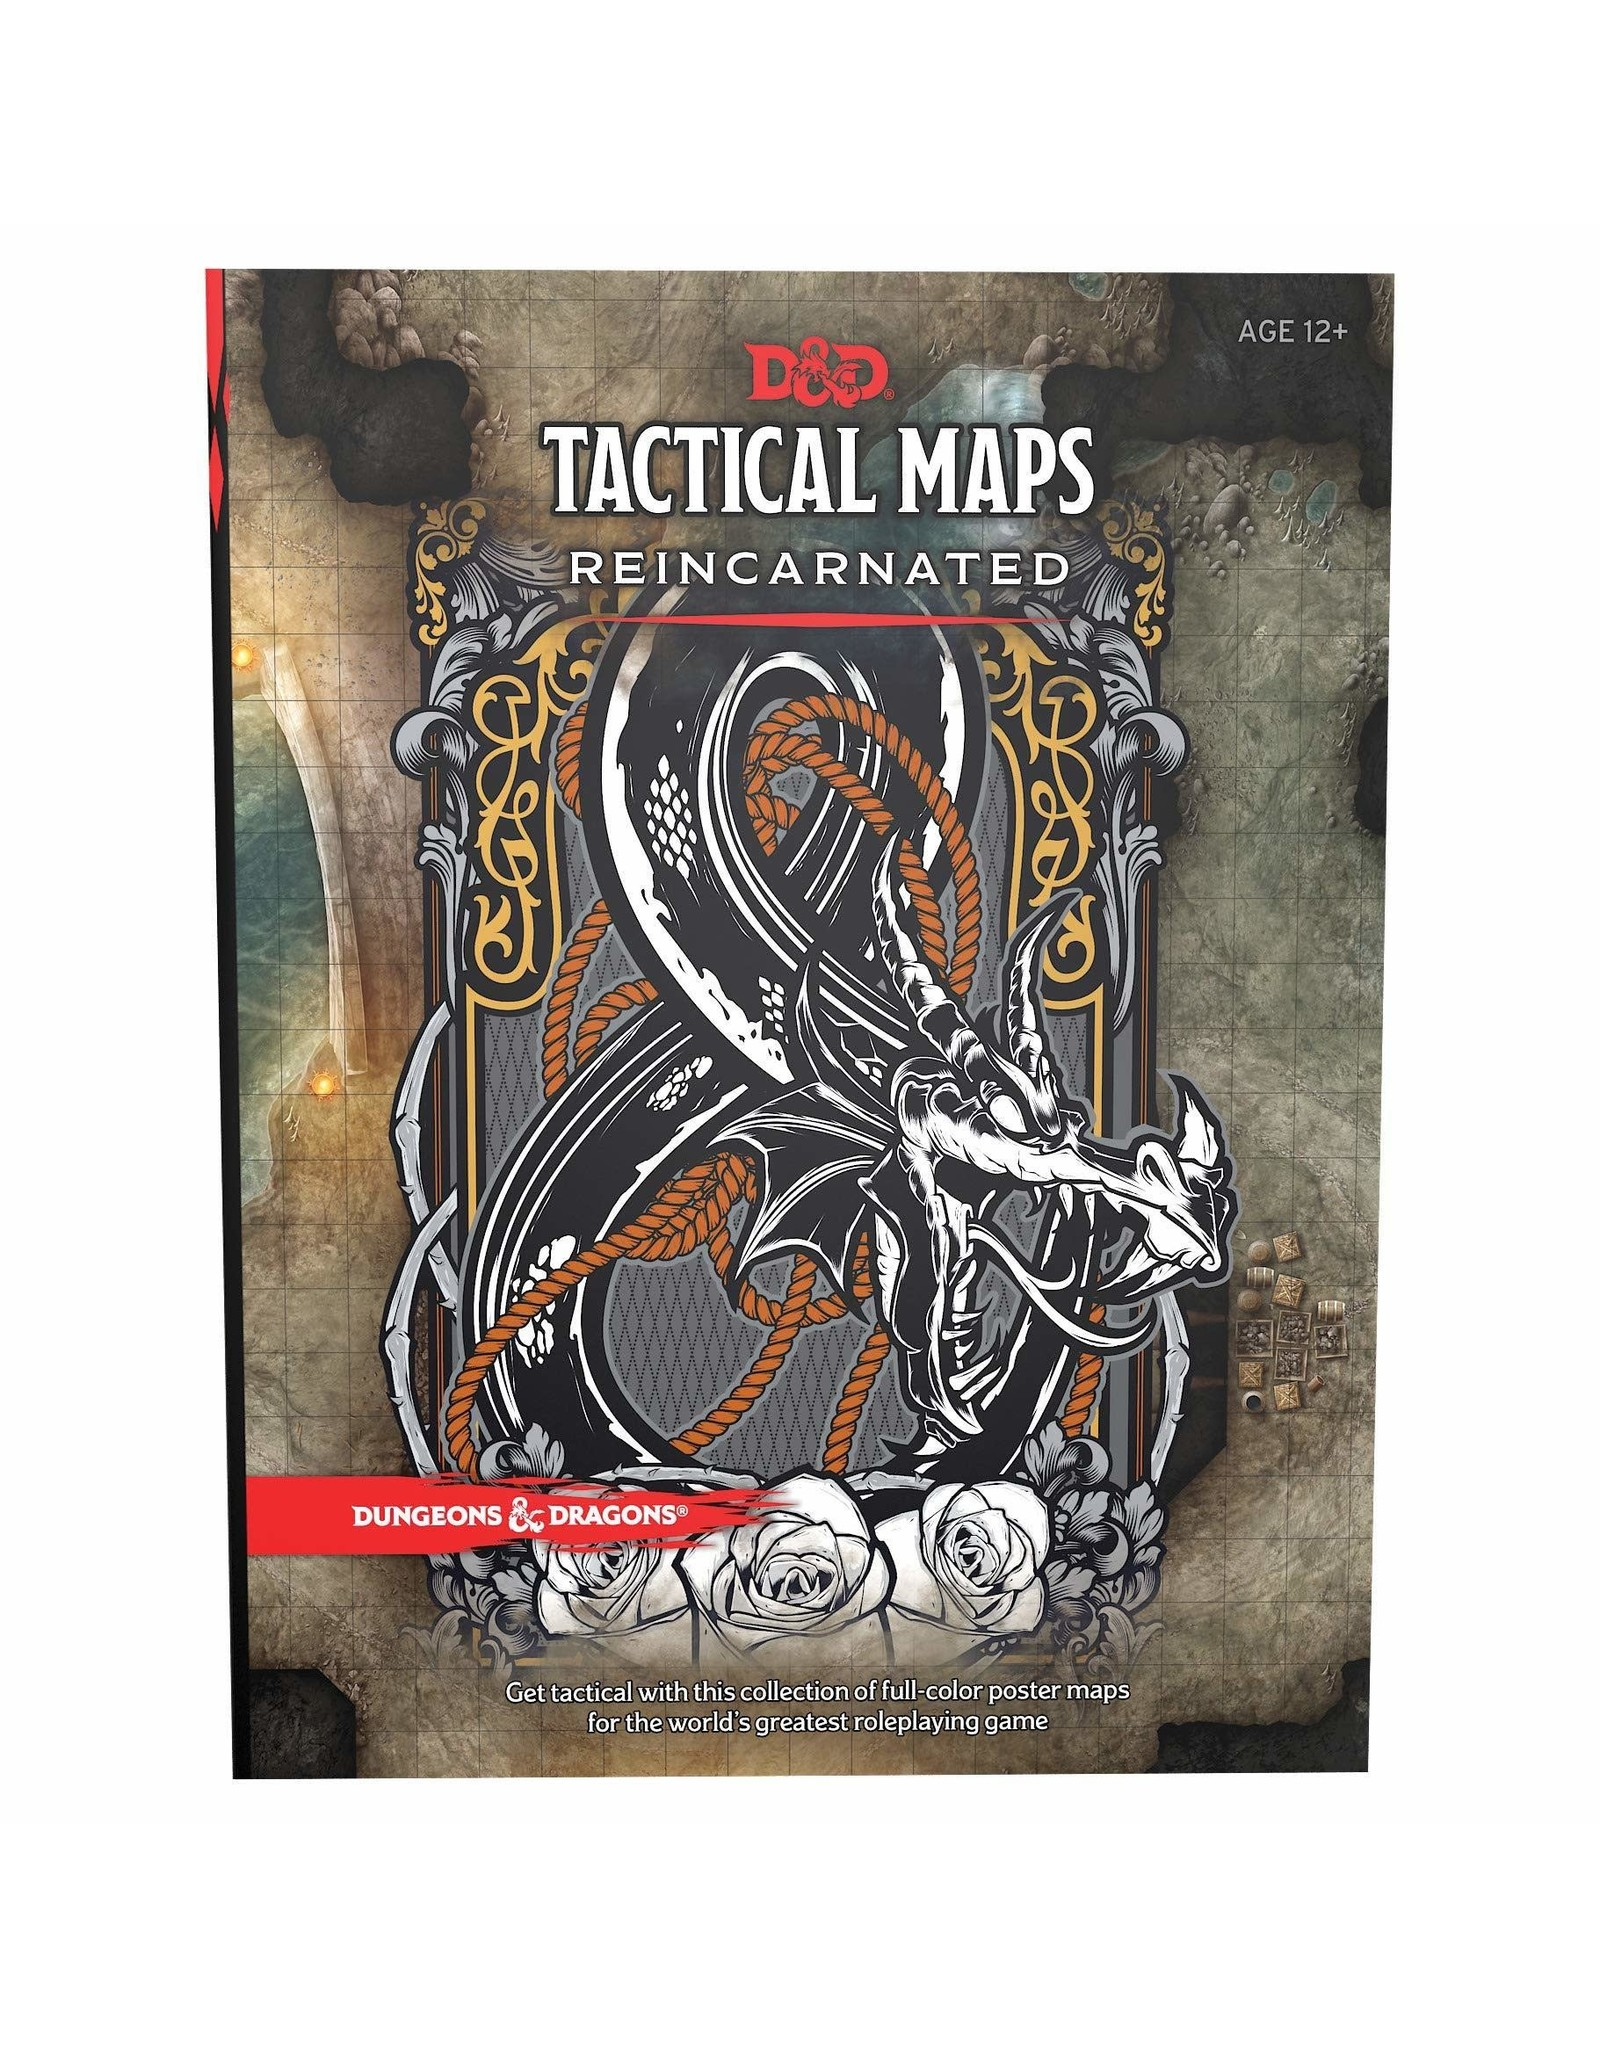 Wizards of the Coast DND RPG TACTICAL MAPS REINCARNATED